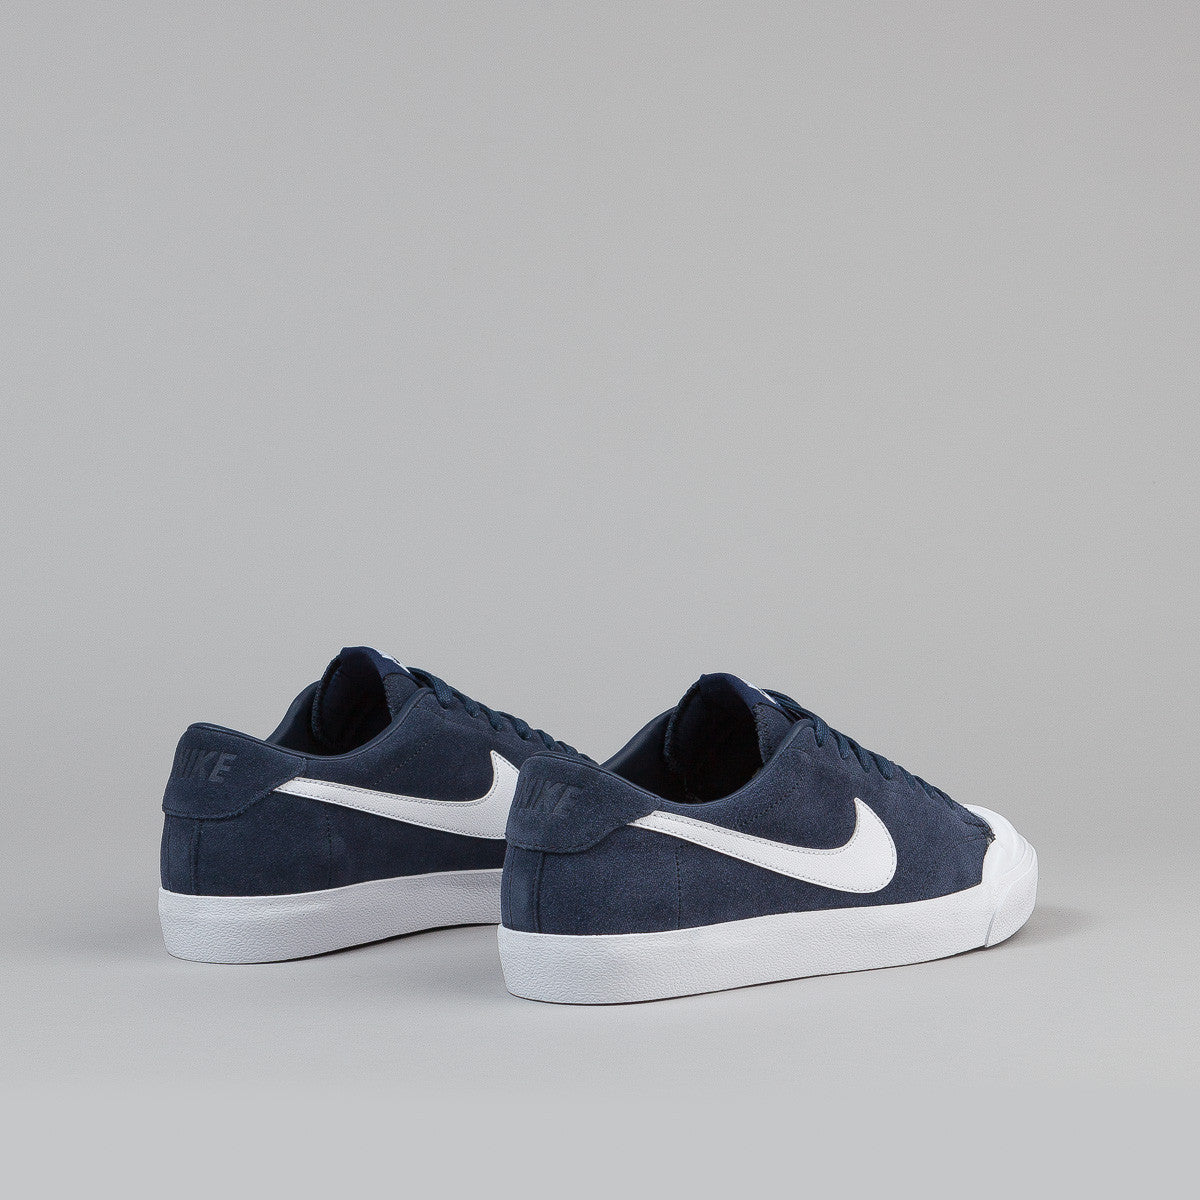 Nike SB Air Zoom All Court CK - Obsidian White